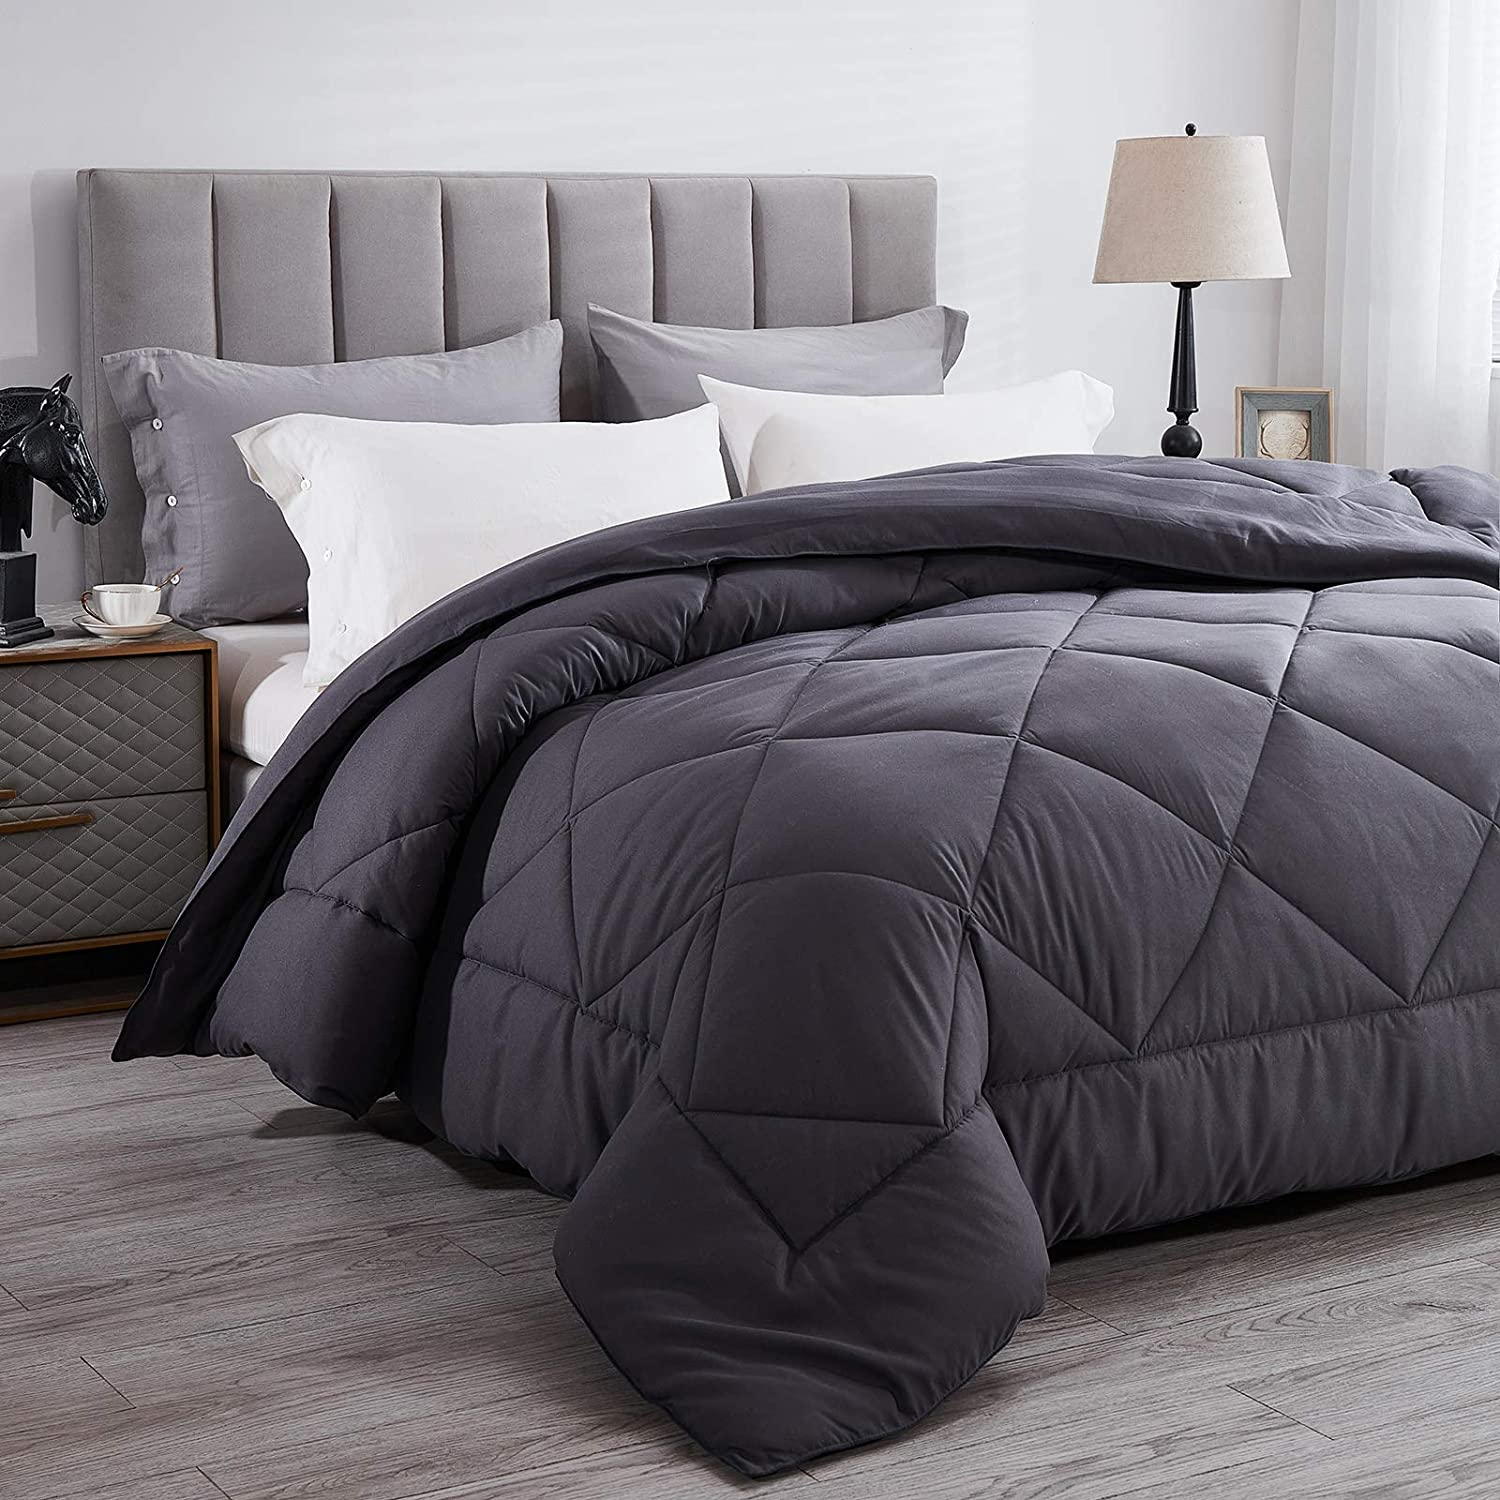 Wamsound All-Season Queen Down Alternative Quilted Comforter,Comfortable Sleep Quilt Bedding,Reversible Duvet Insert with Corner Tabs,Winter Warmth Breathable,Super Soft,Machine Washable